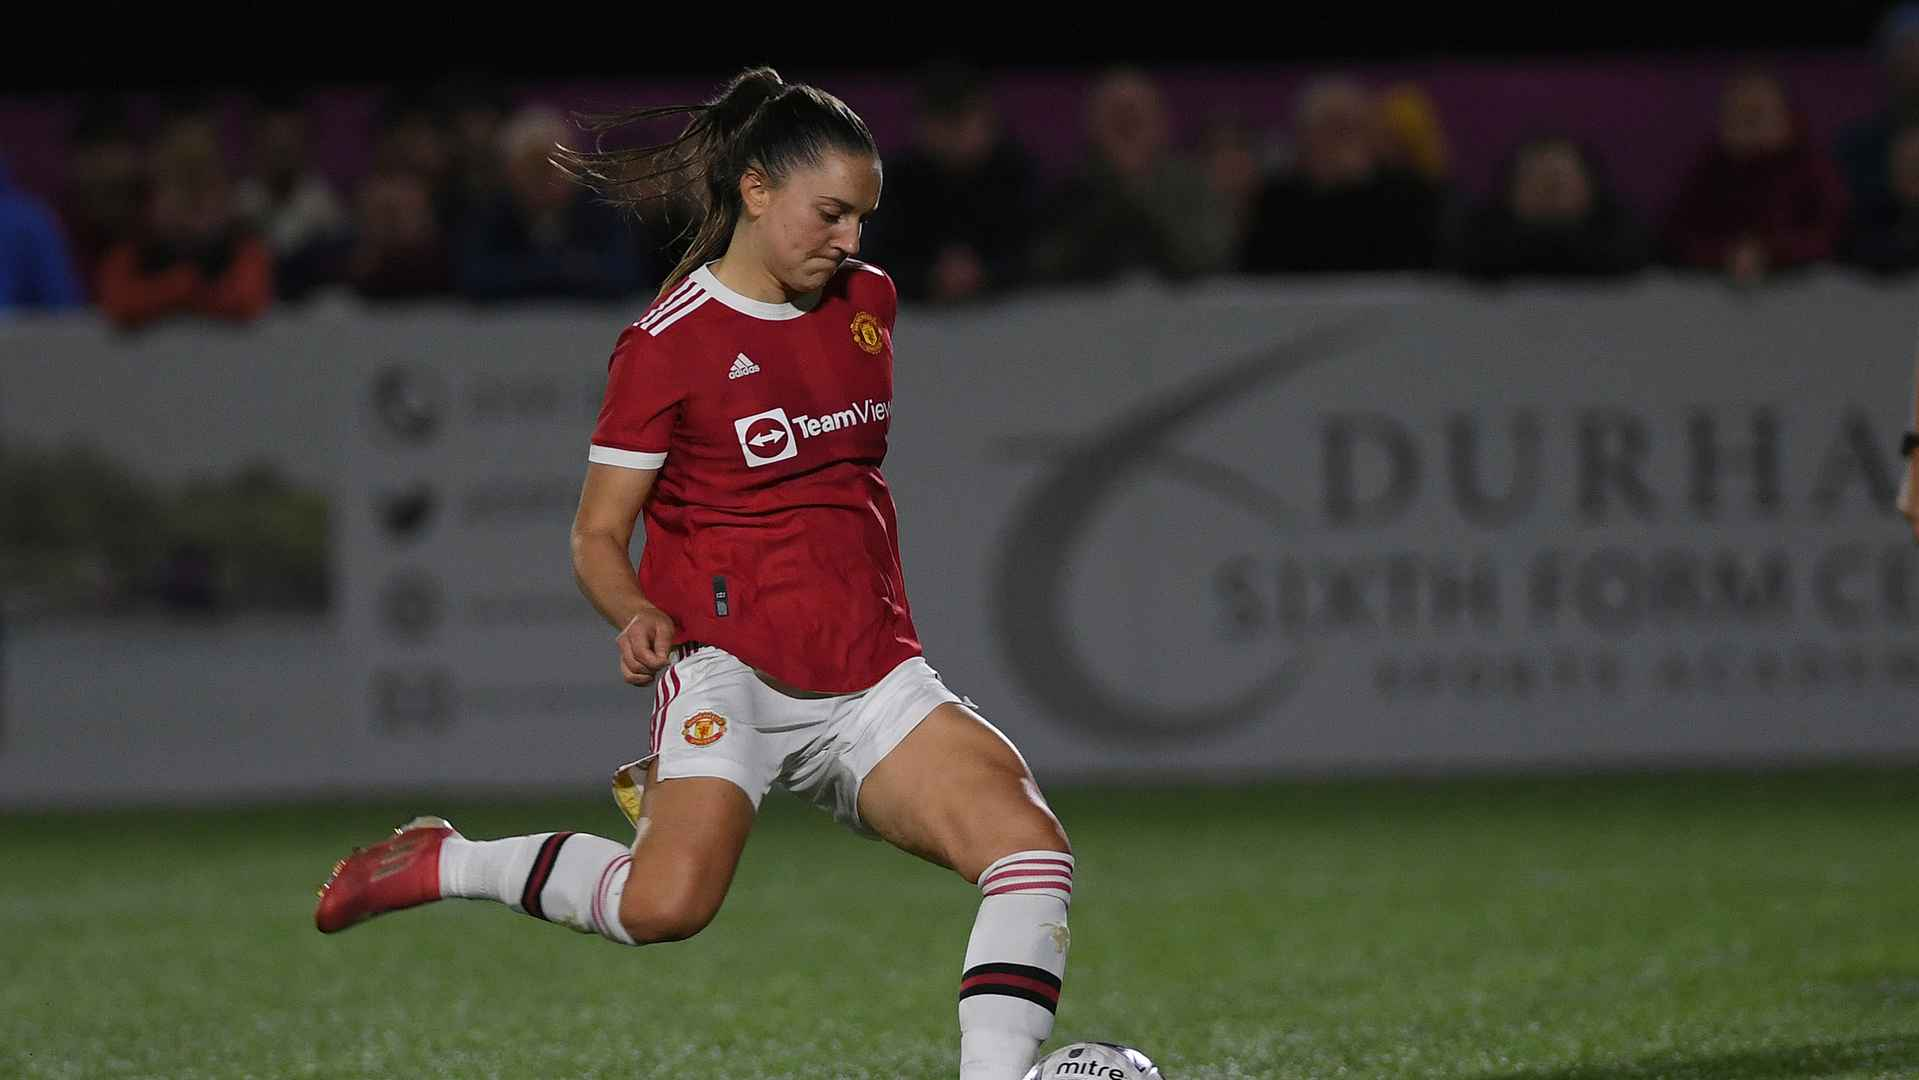 Boe Risa: It was great to play